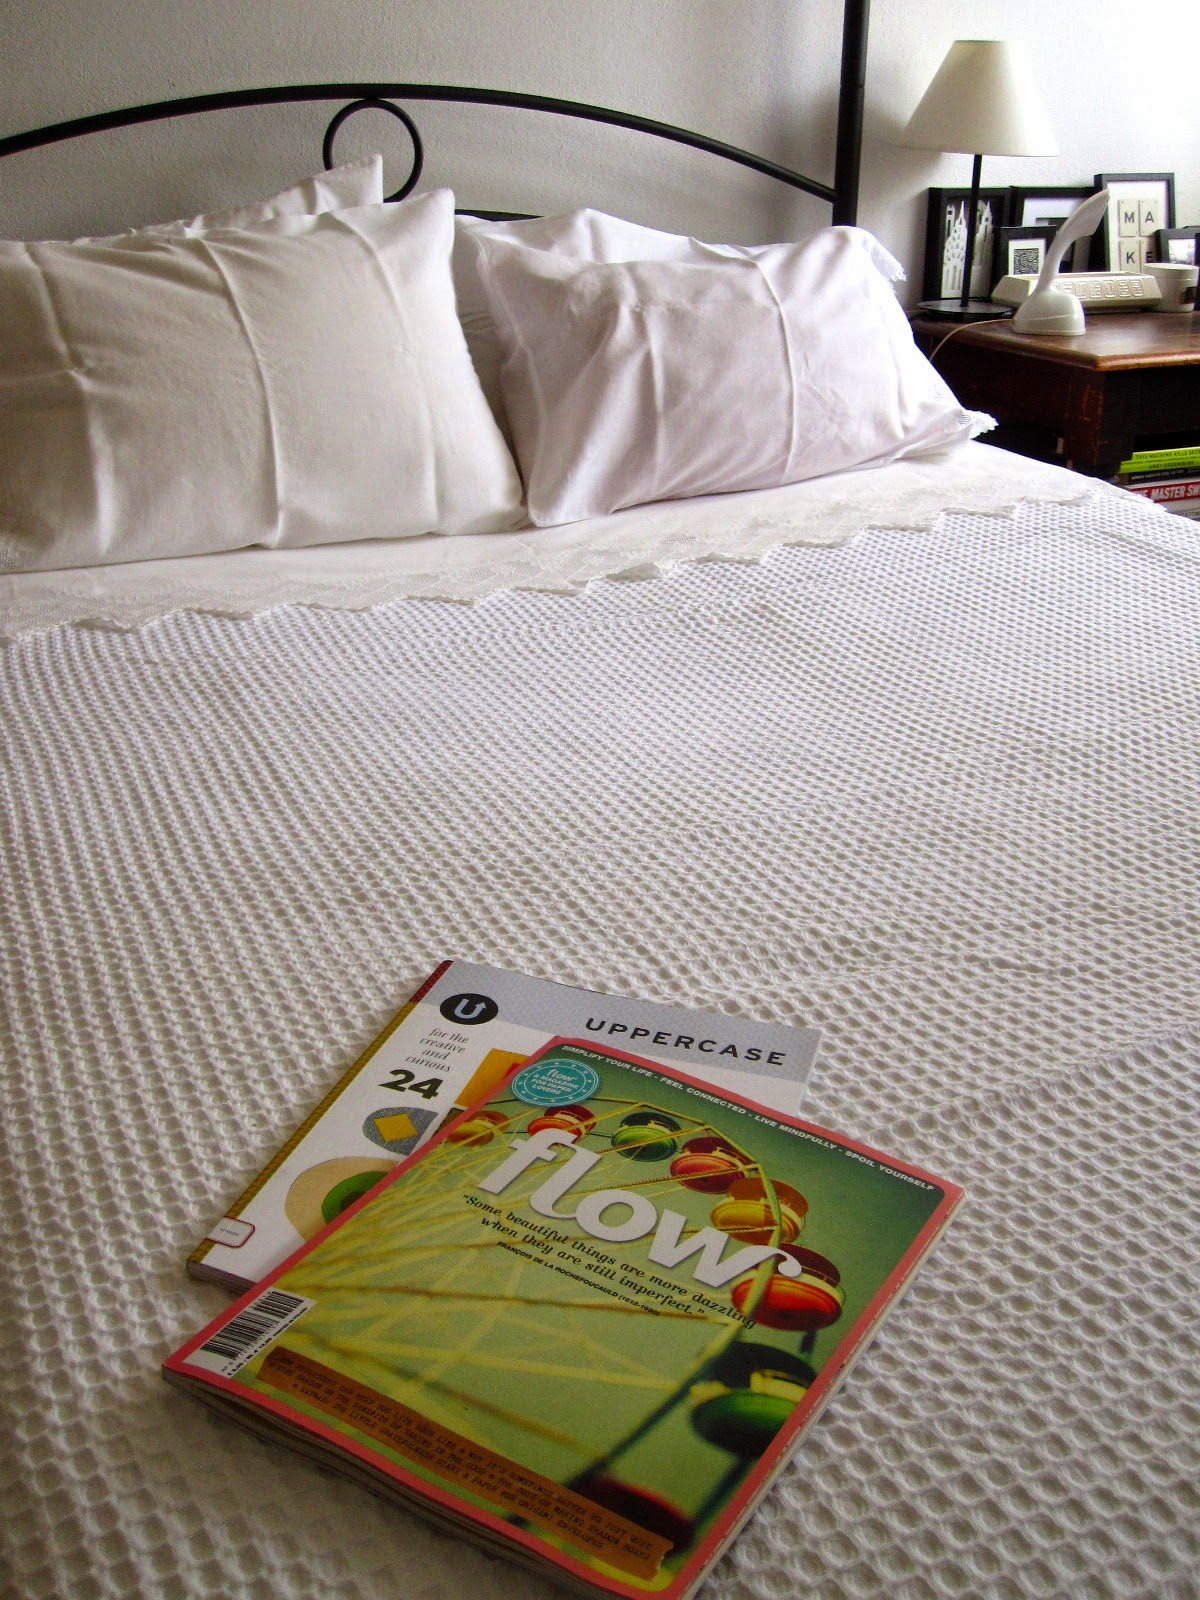 Freshly-made bed with a white waffle-weave blanket and a copy of Flow magazine and Uppercase magazine on it.